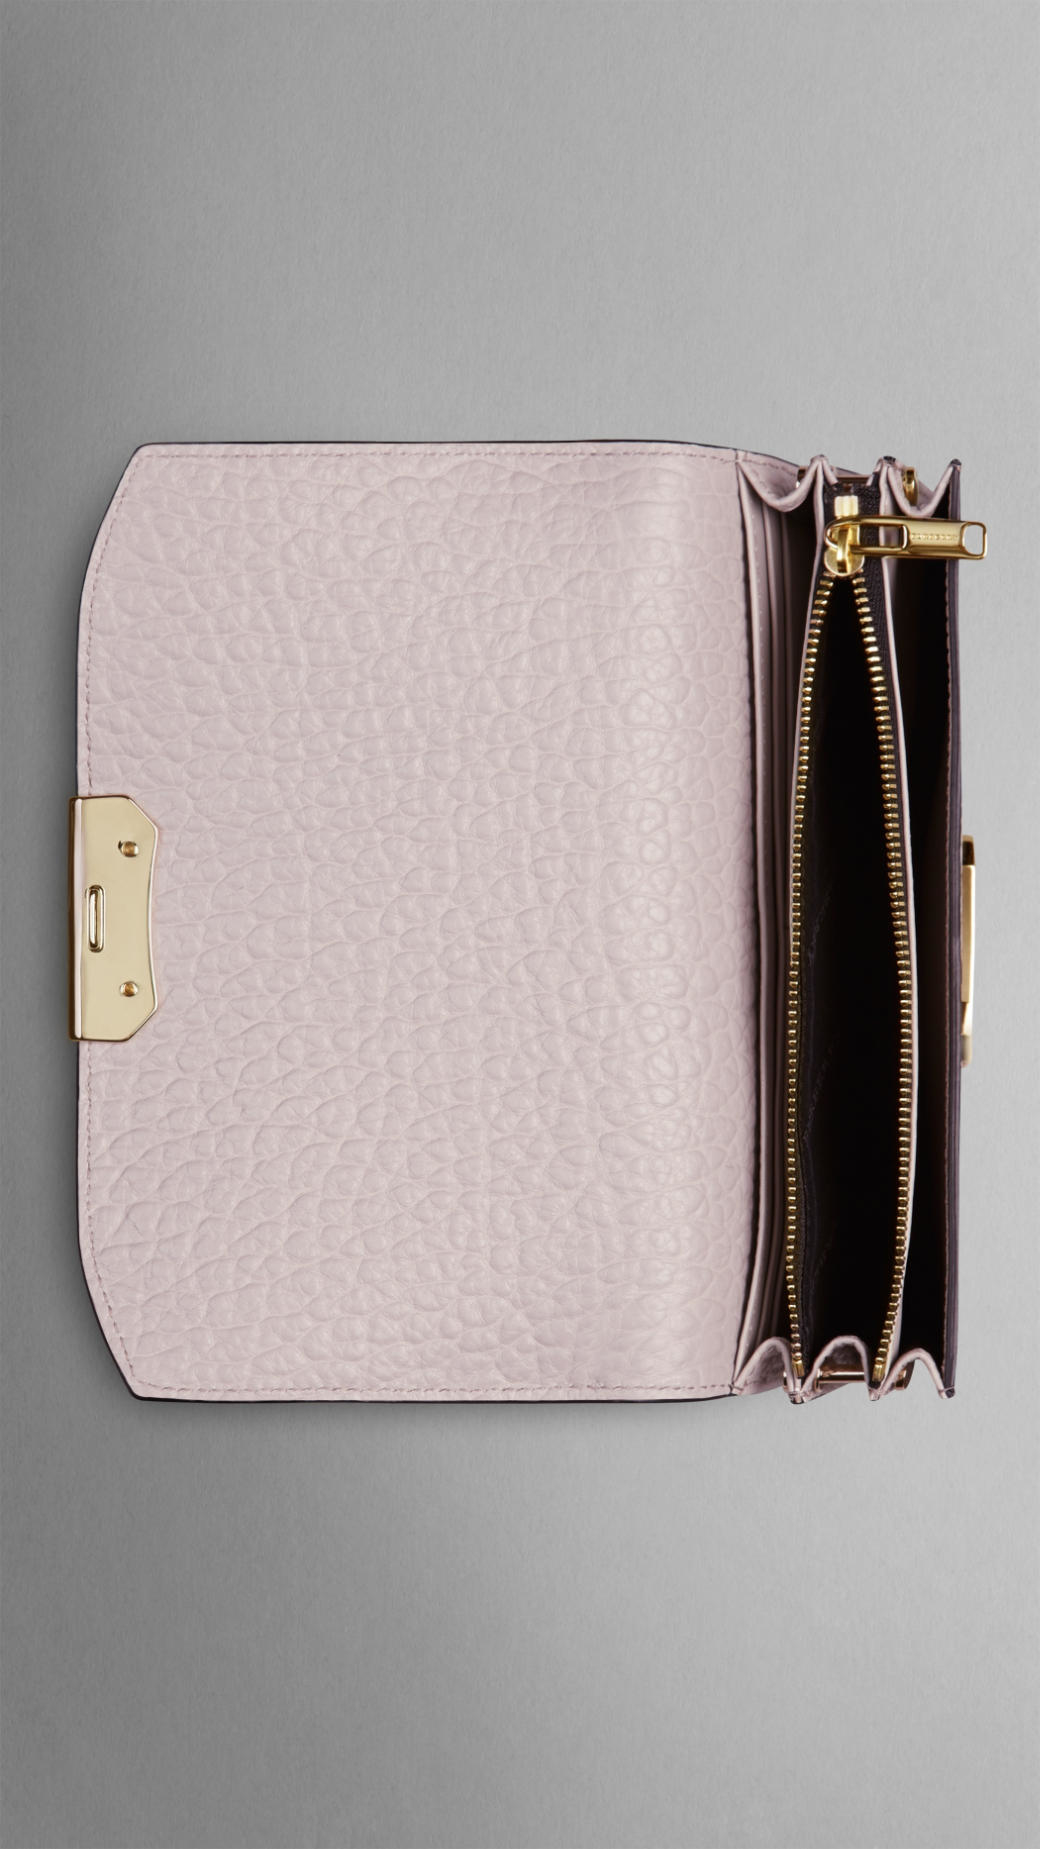 584fc72e6f00 Lyst - Burberry Small Signature Grain Leather Clutch Bag With Chain ...